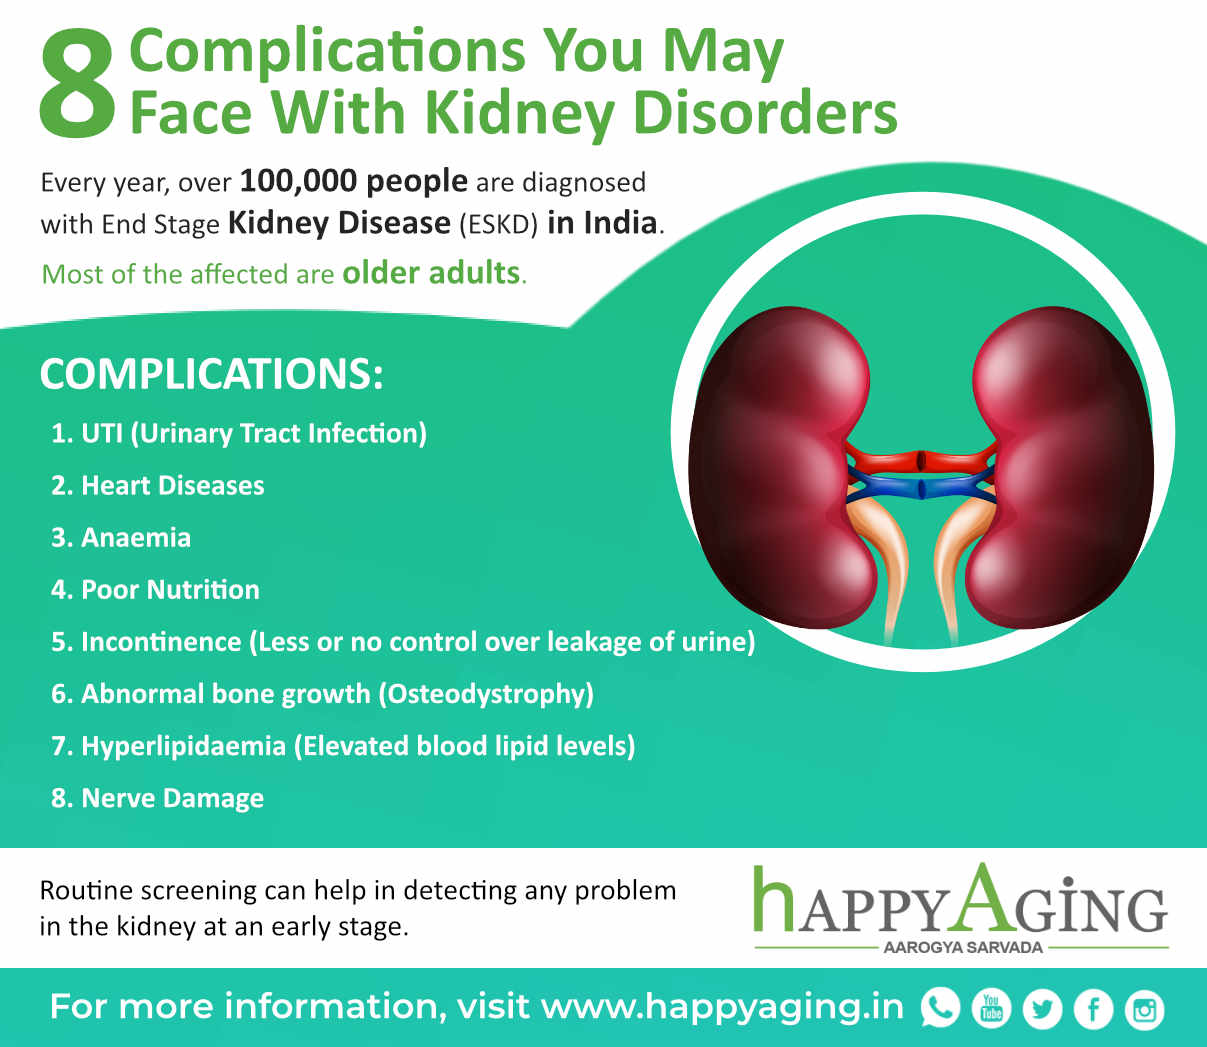 8 complications you may face with kidney disorders